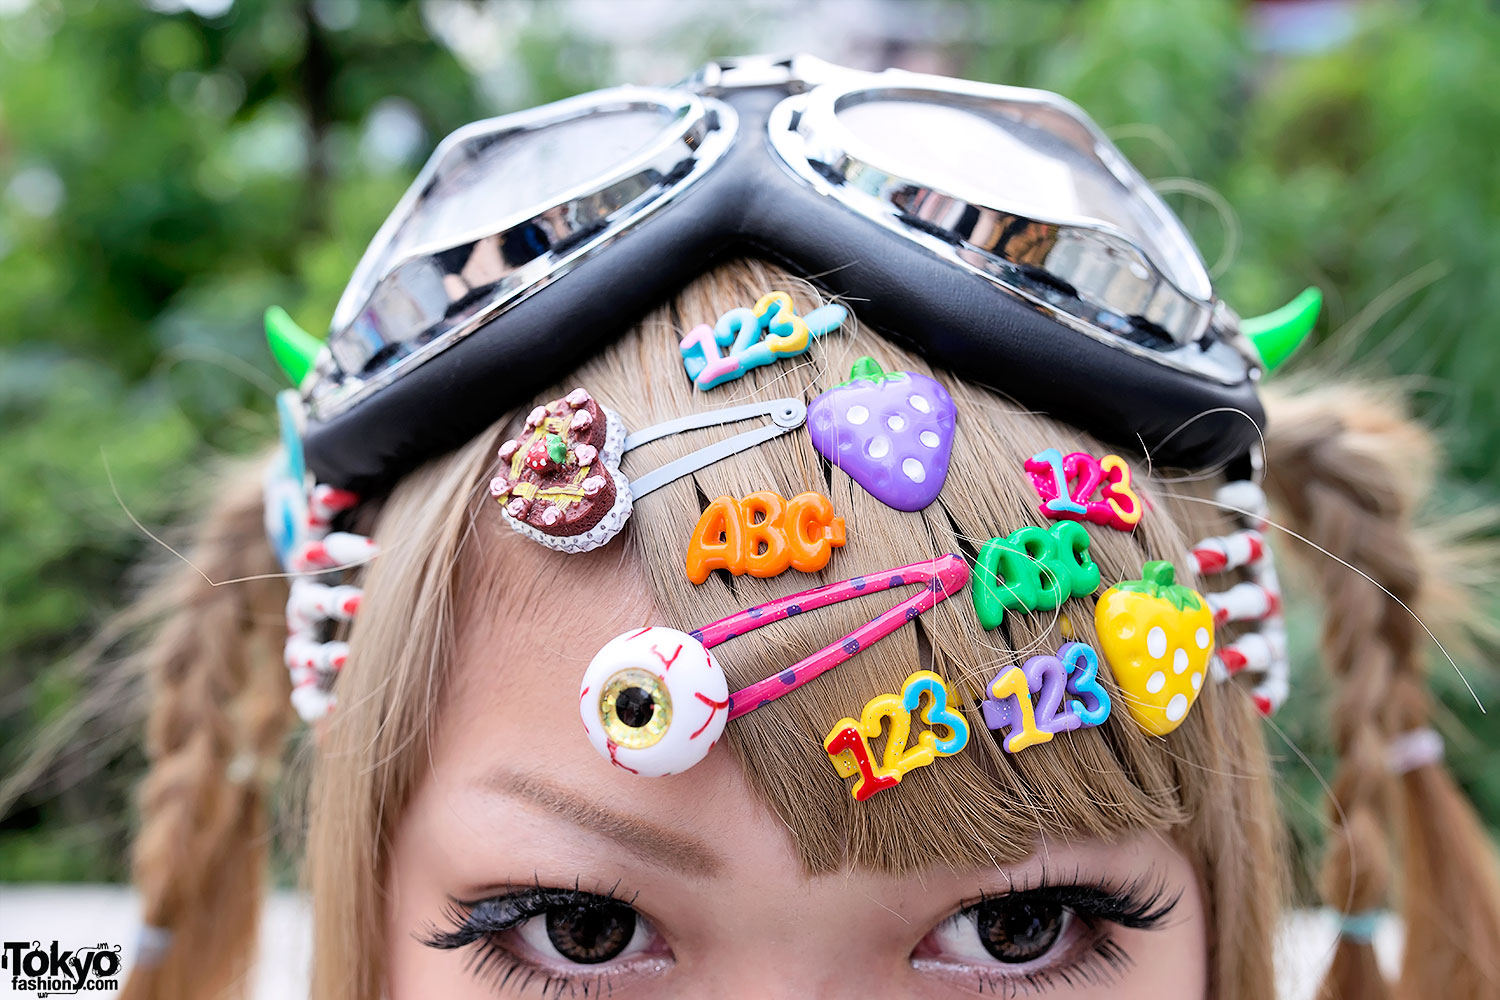 Decora Hair Clips Amp Skeleton Hands Tokyo Fashion News